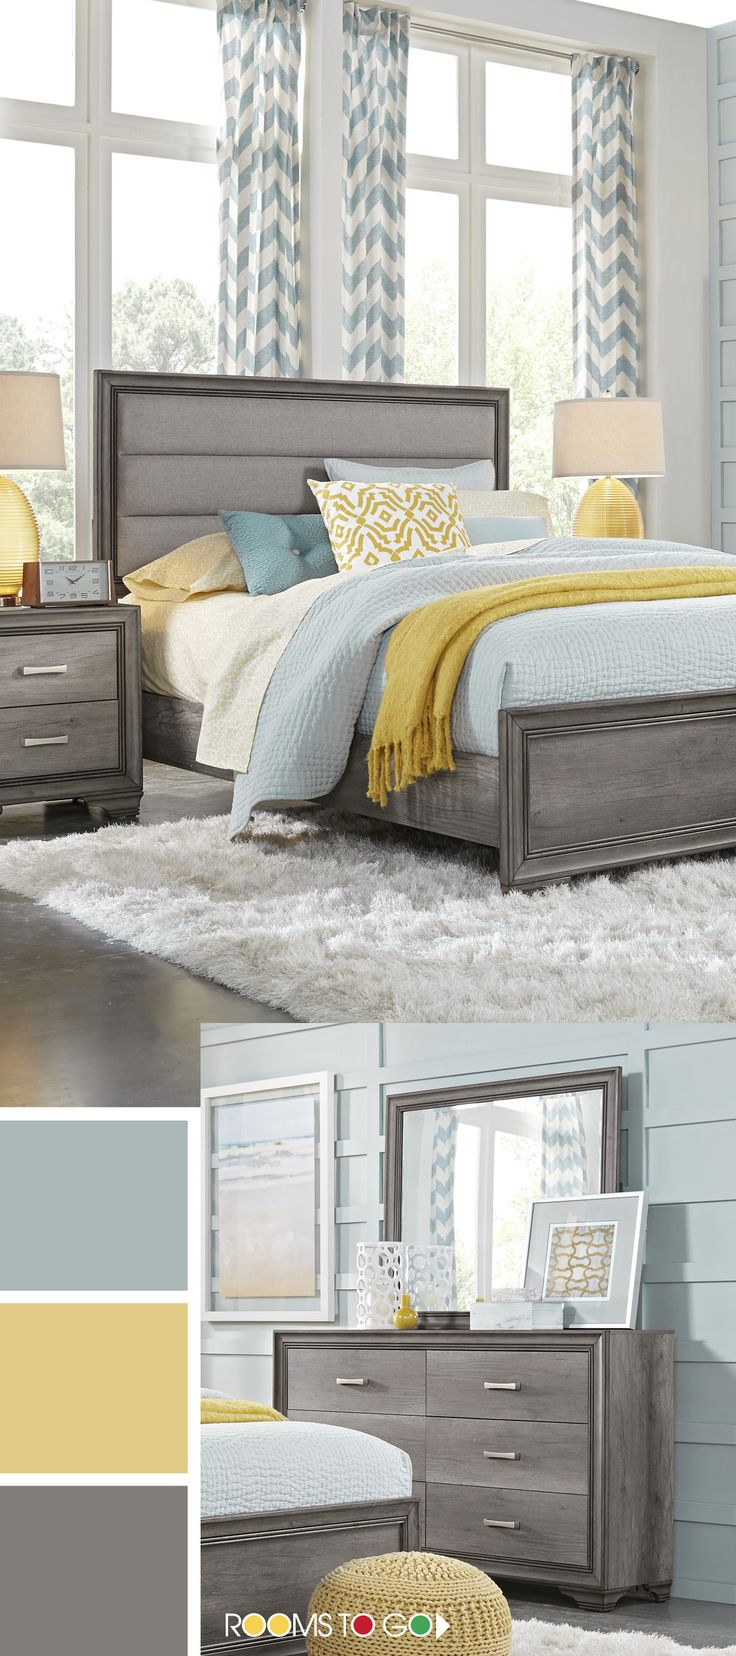 Clean lines, an on-trend weathered gray finish and upholstered elements create a chic bedroom retreat with the transitional Marlow collection.